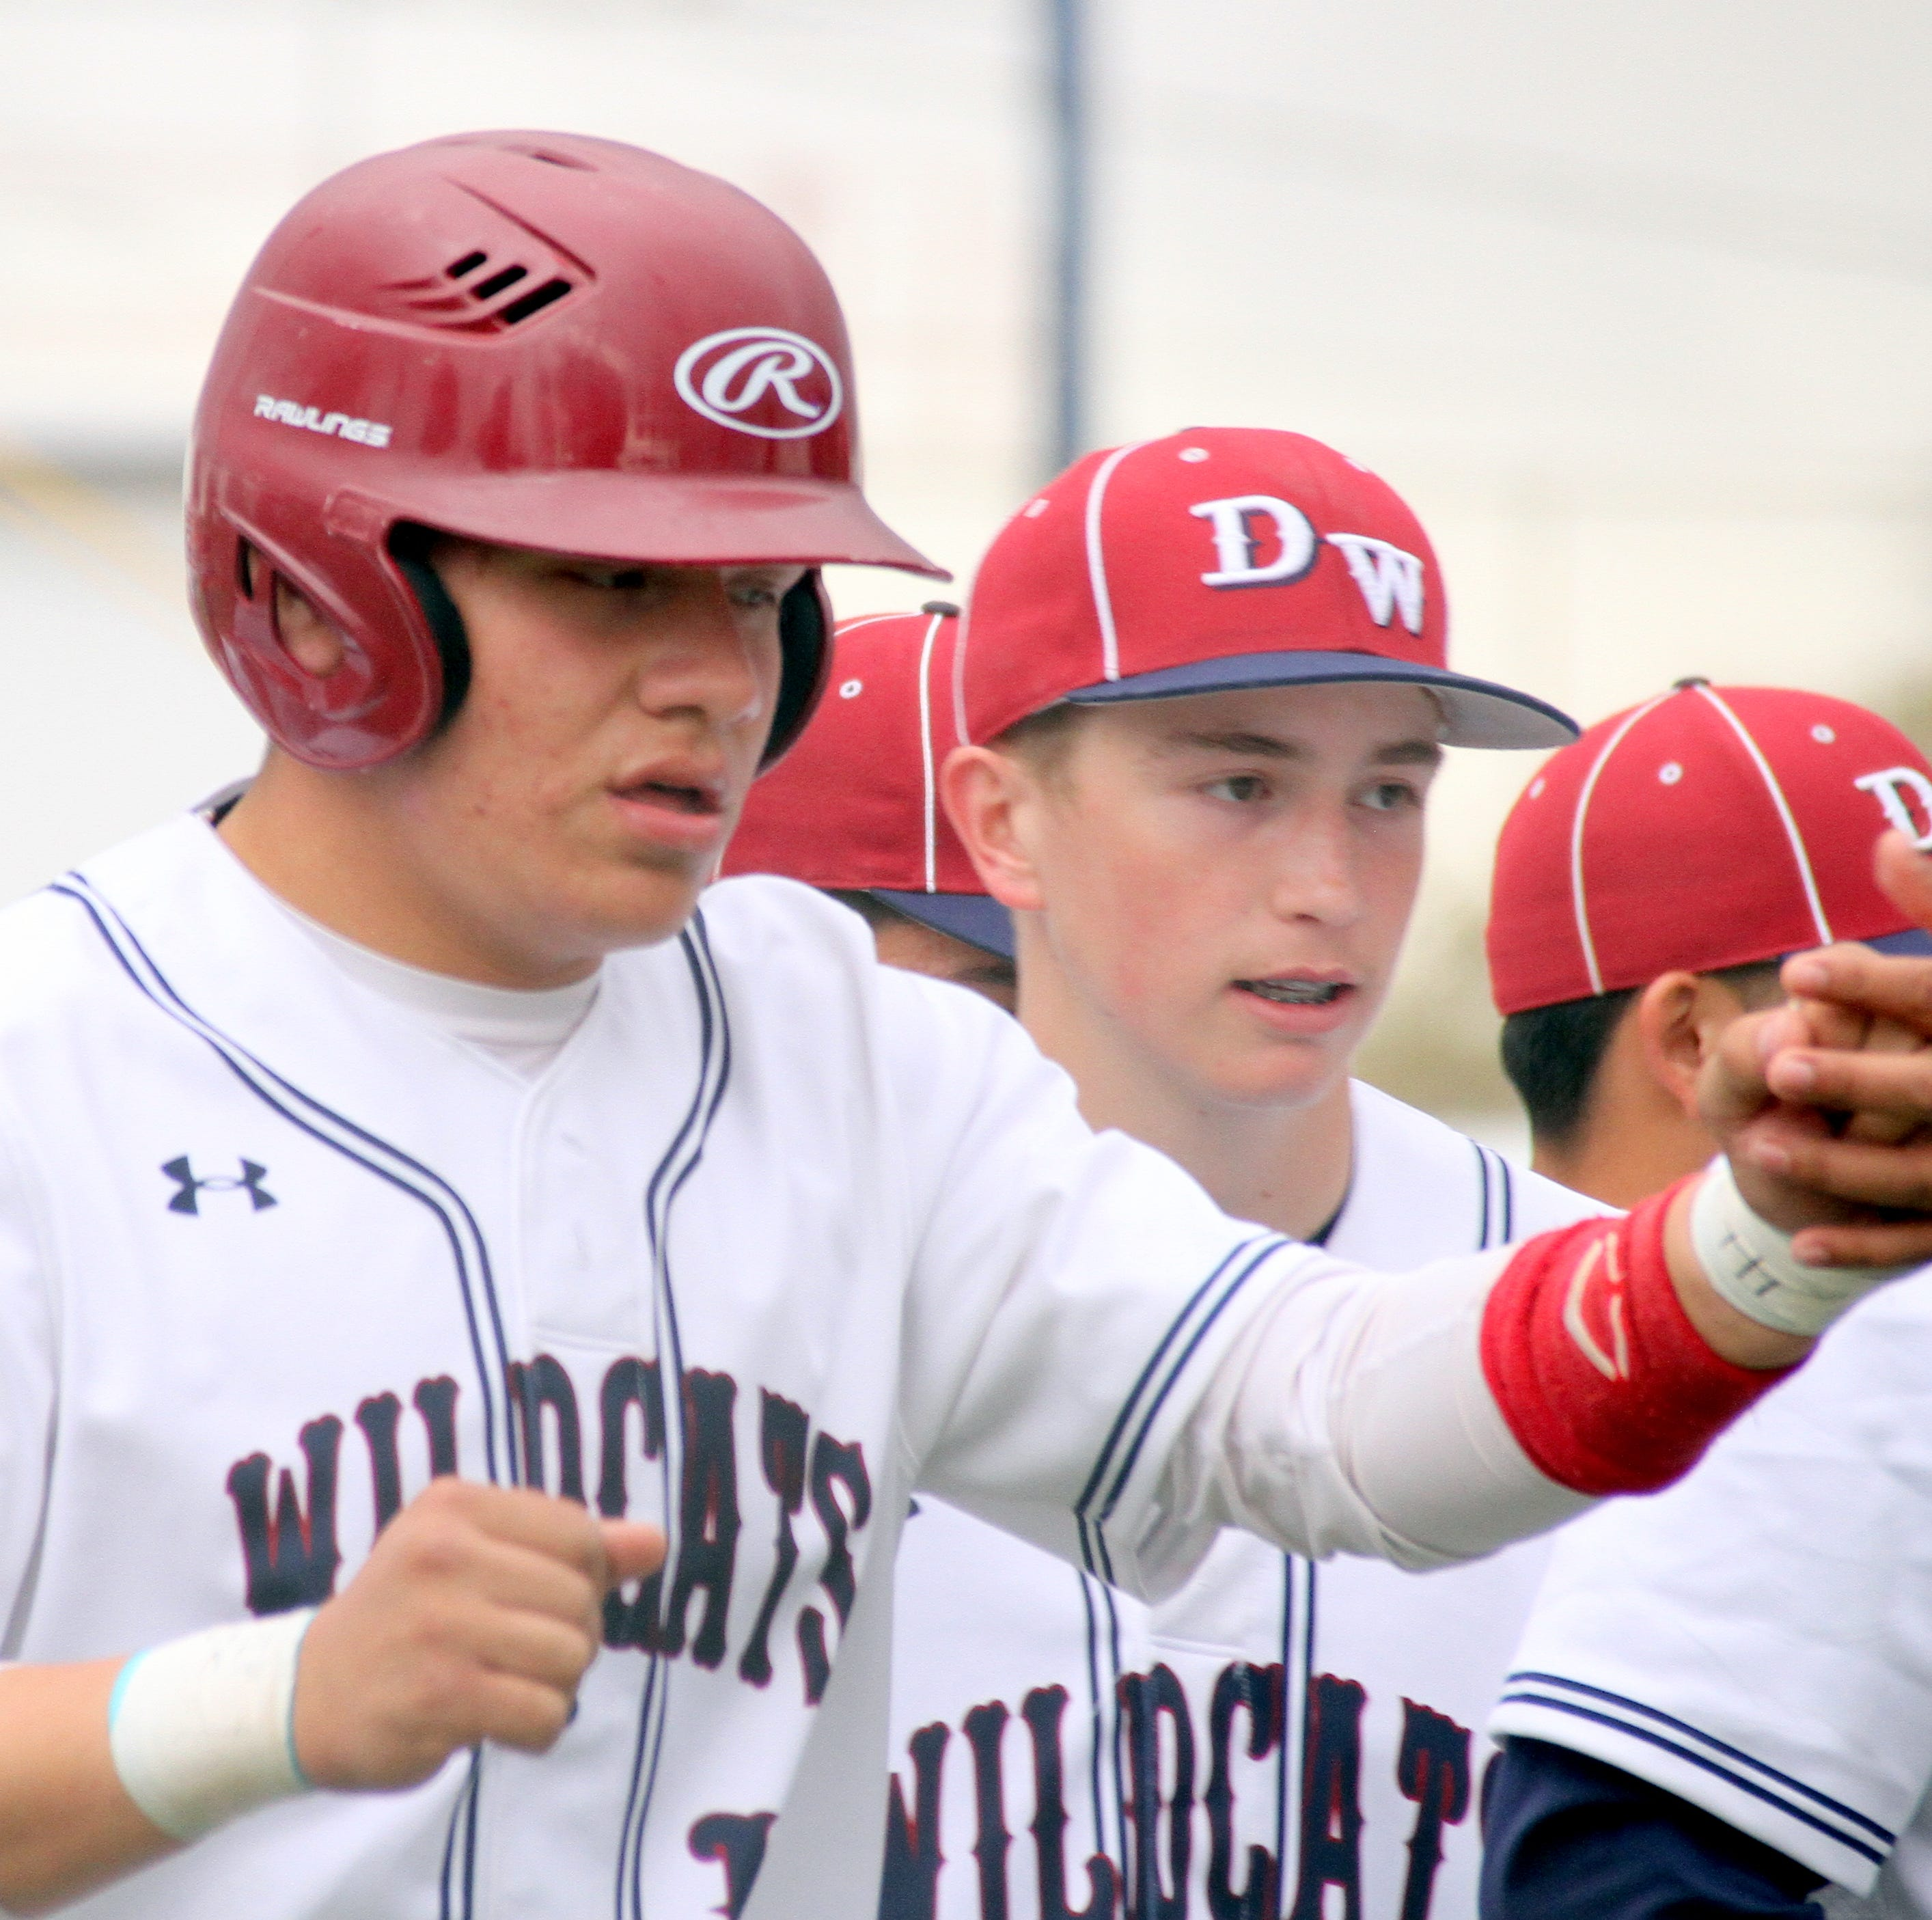 Deming Wildcats blanked 8-0 by Centennial Hawks in District 3-5A baseball